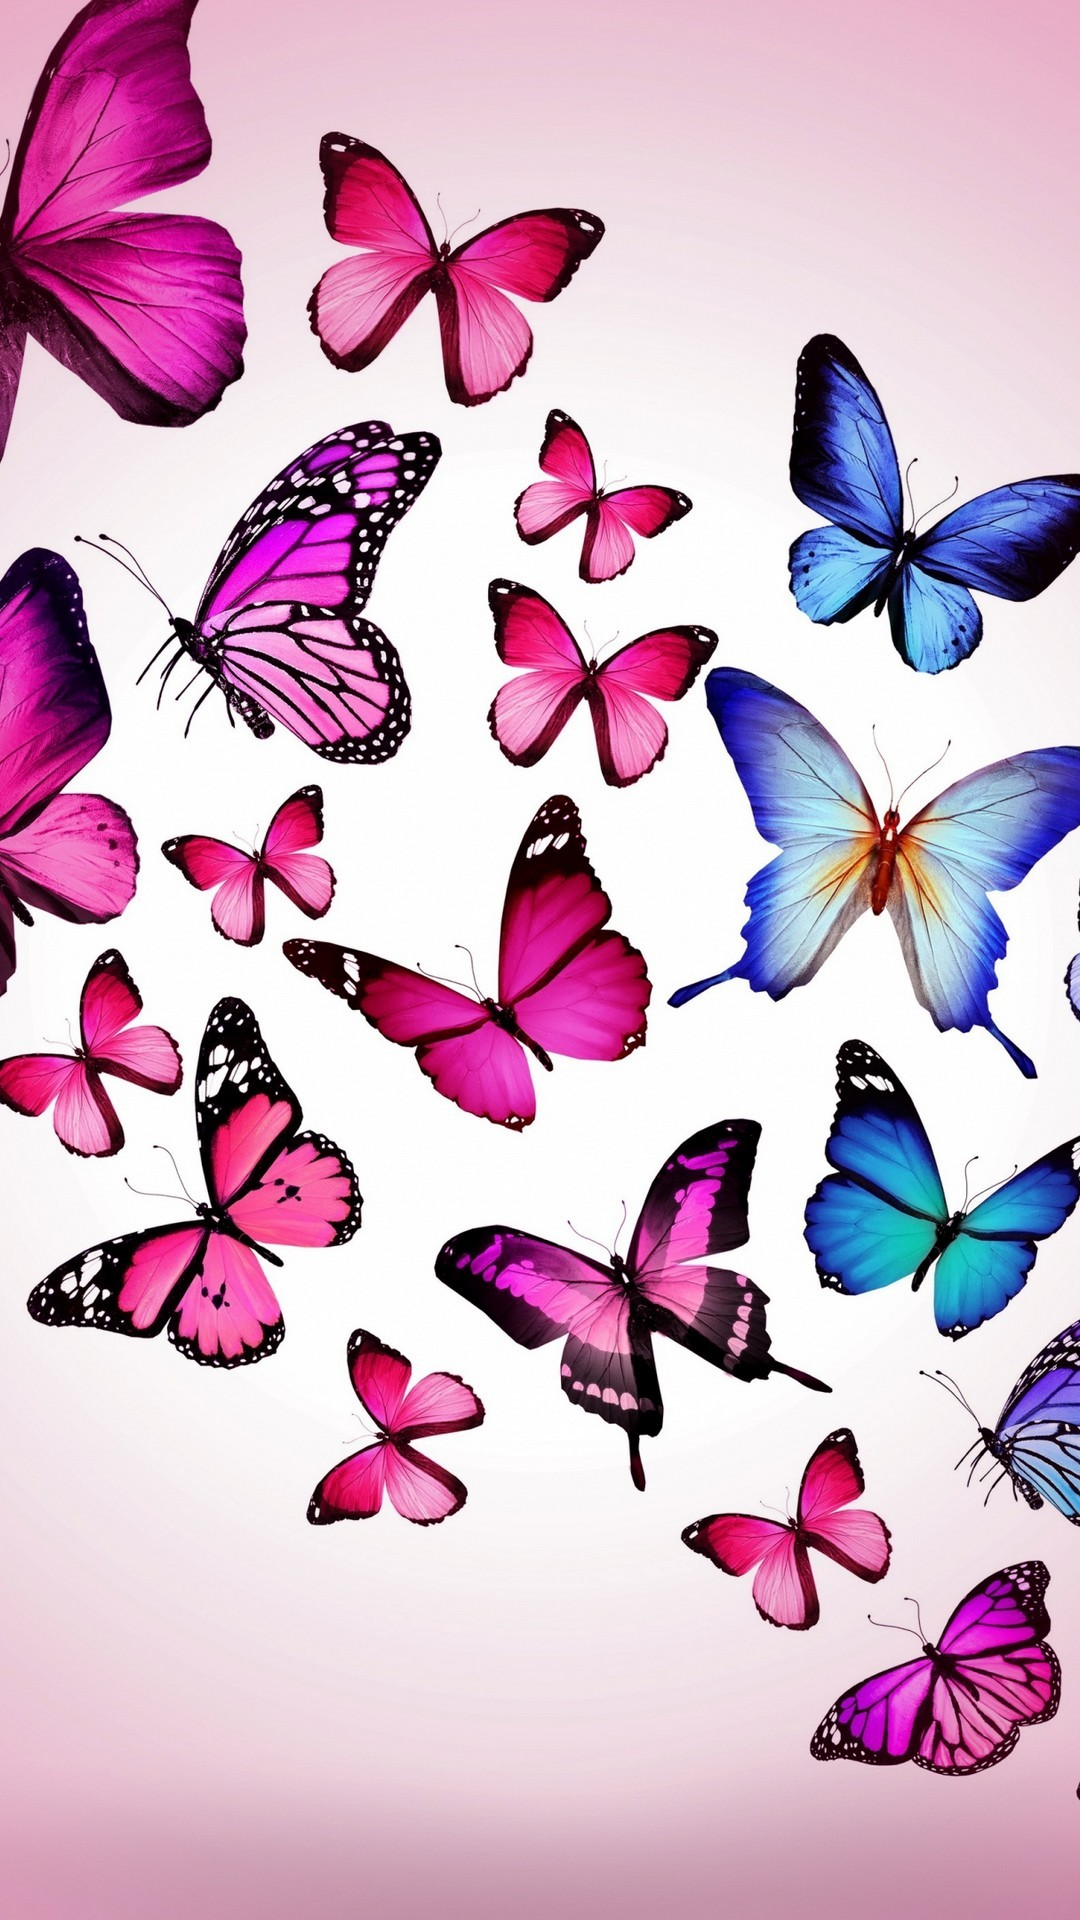 Iphone 7 Wallpaper Pink Butterfly Resolution - Phone Wallpapers Pink Butterfly , HD Wallpaper & Backgrounds